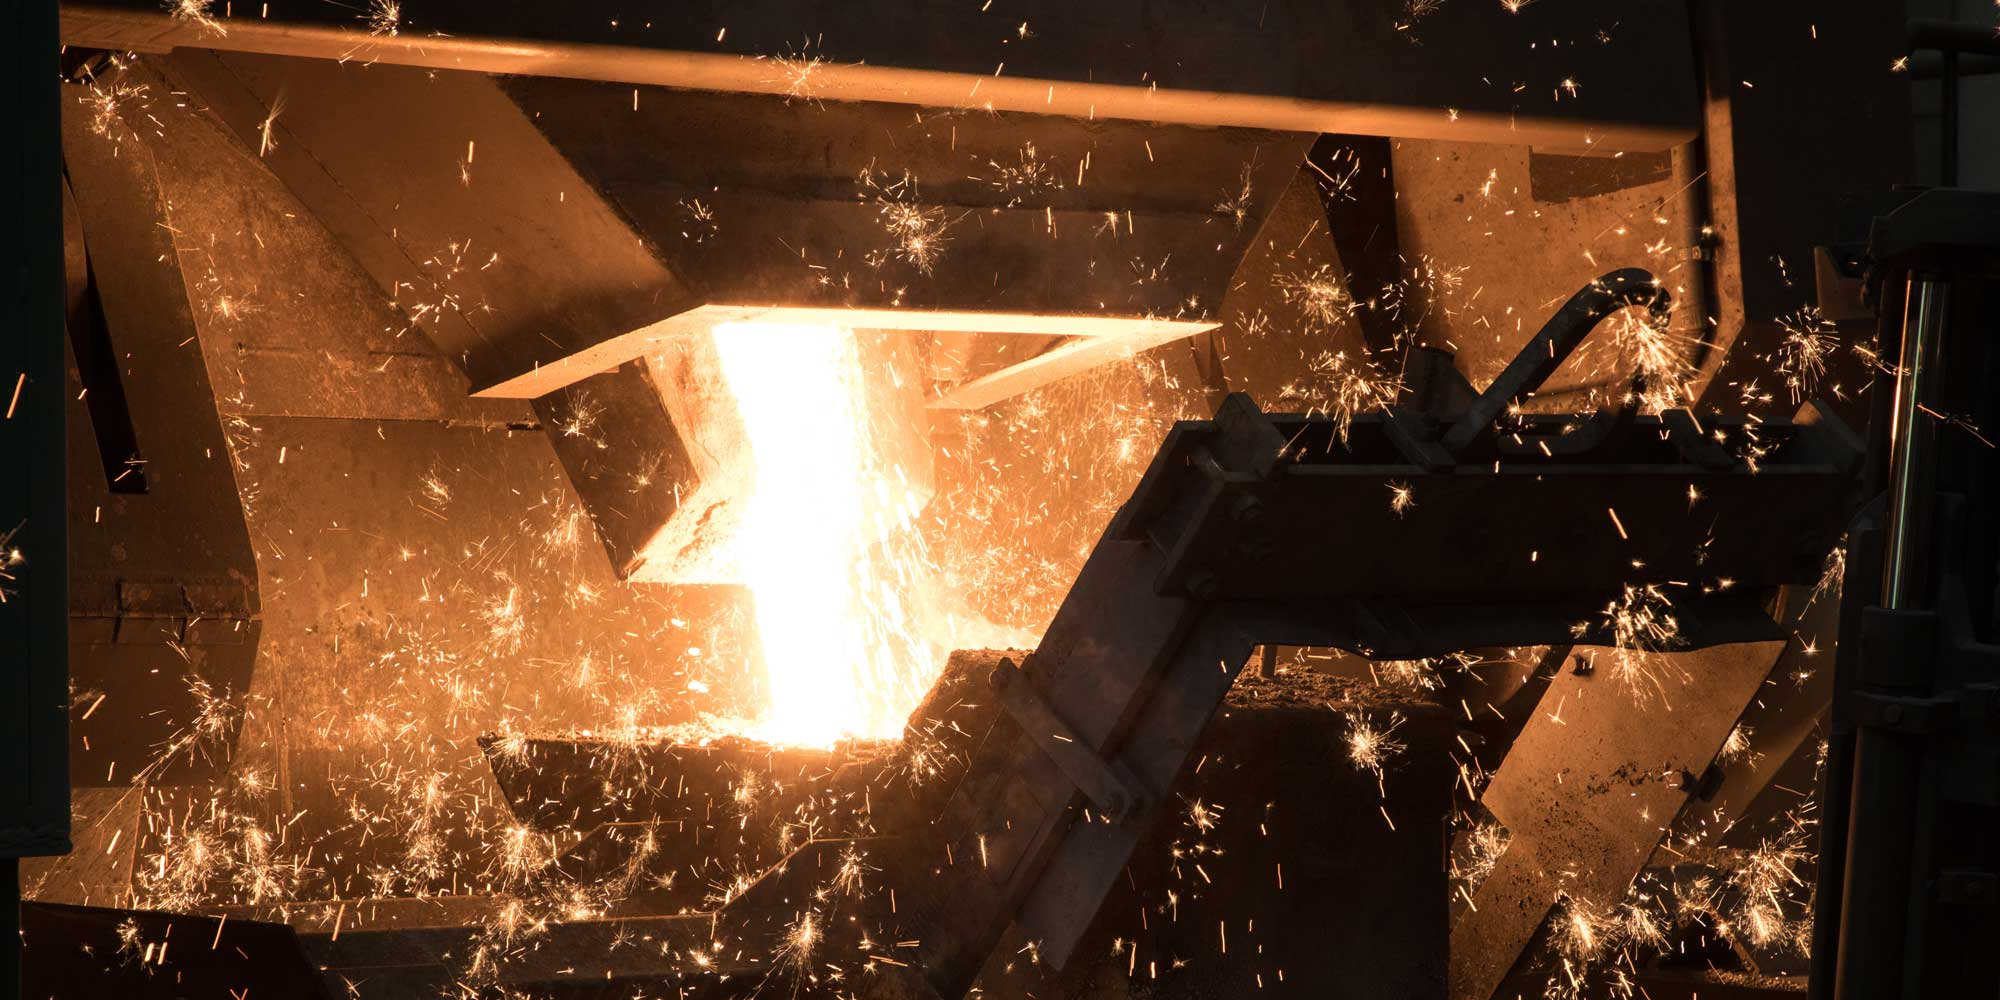 Liquid iron flows out of the furnace